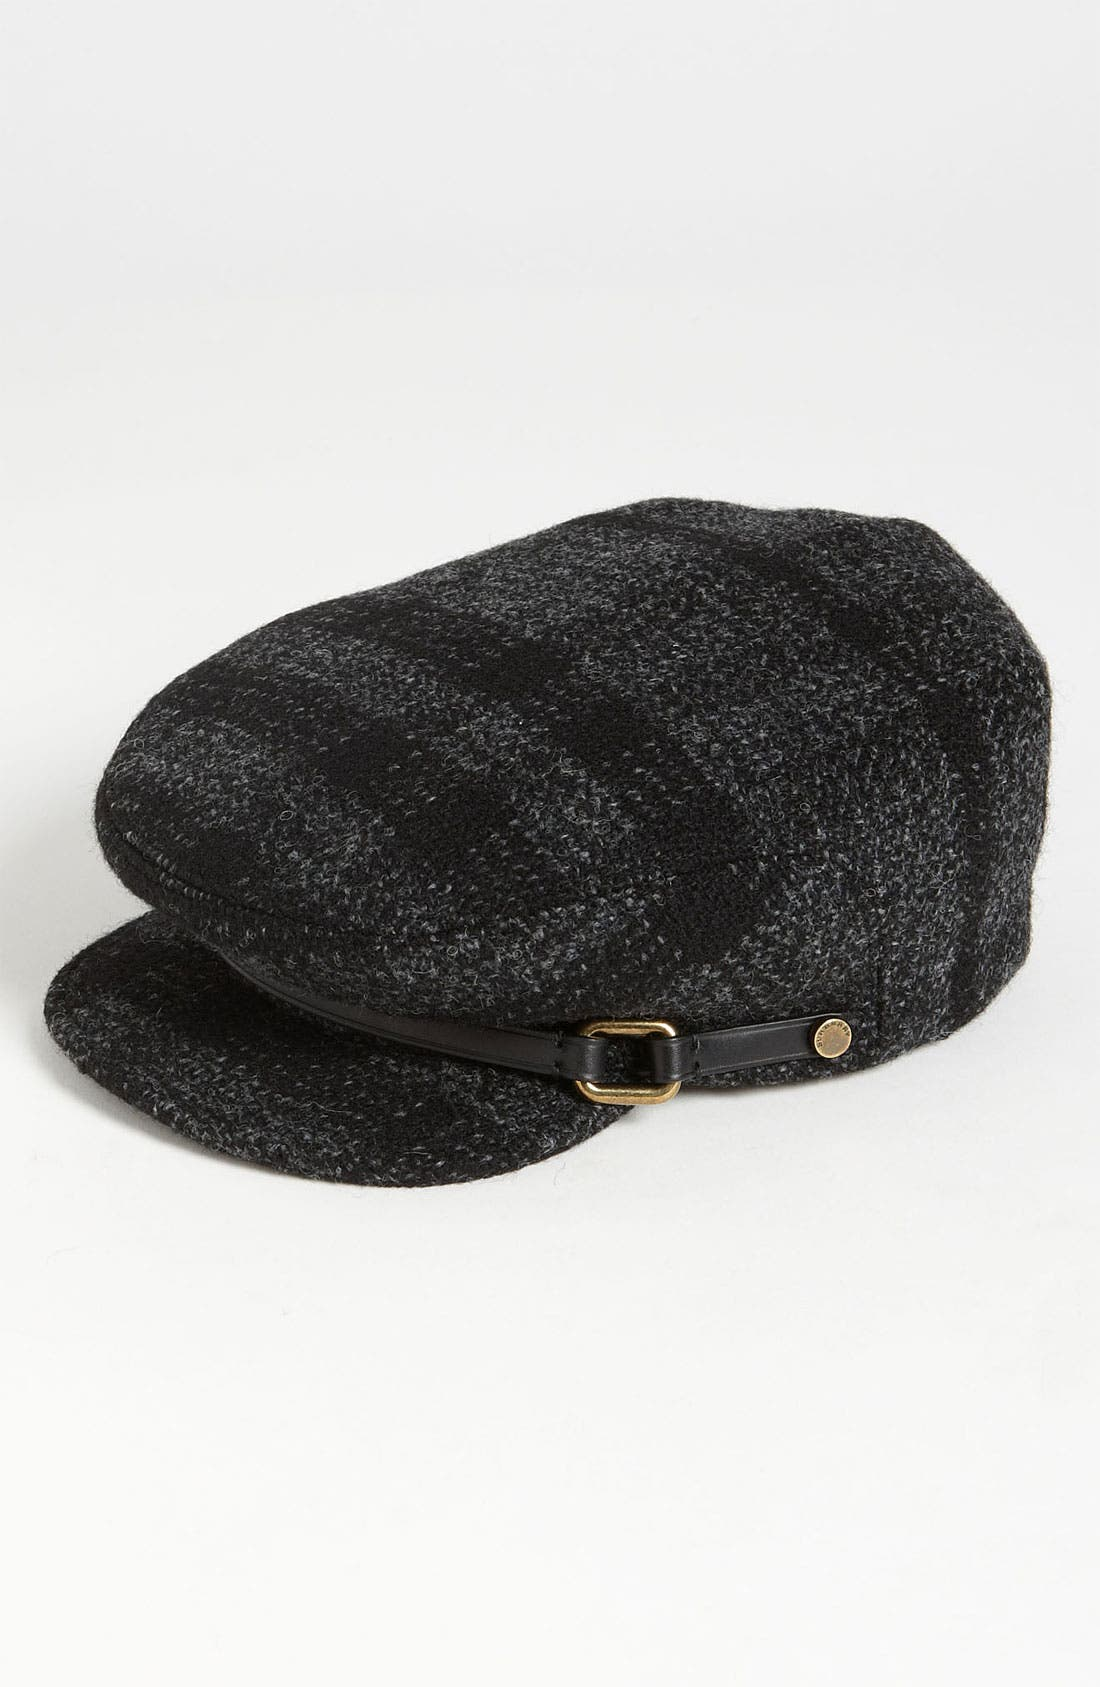 Alternate Image 1 Selected - Burberry Smoked Check Wool Flat Cap